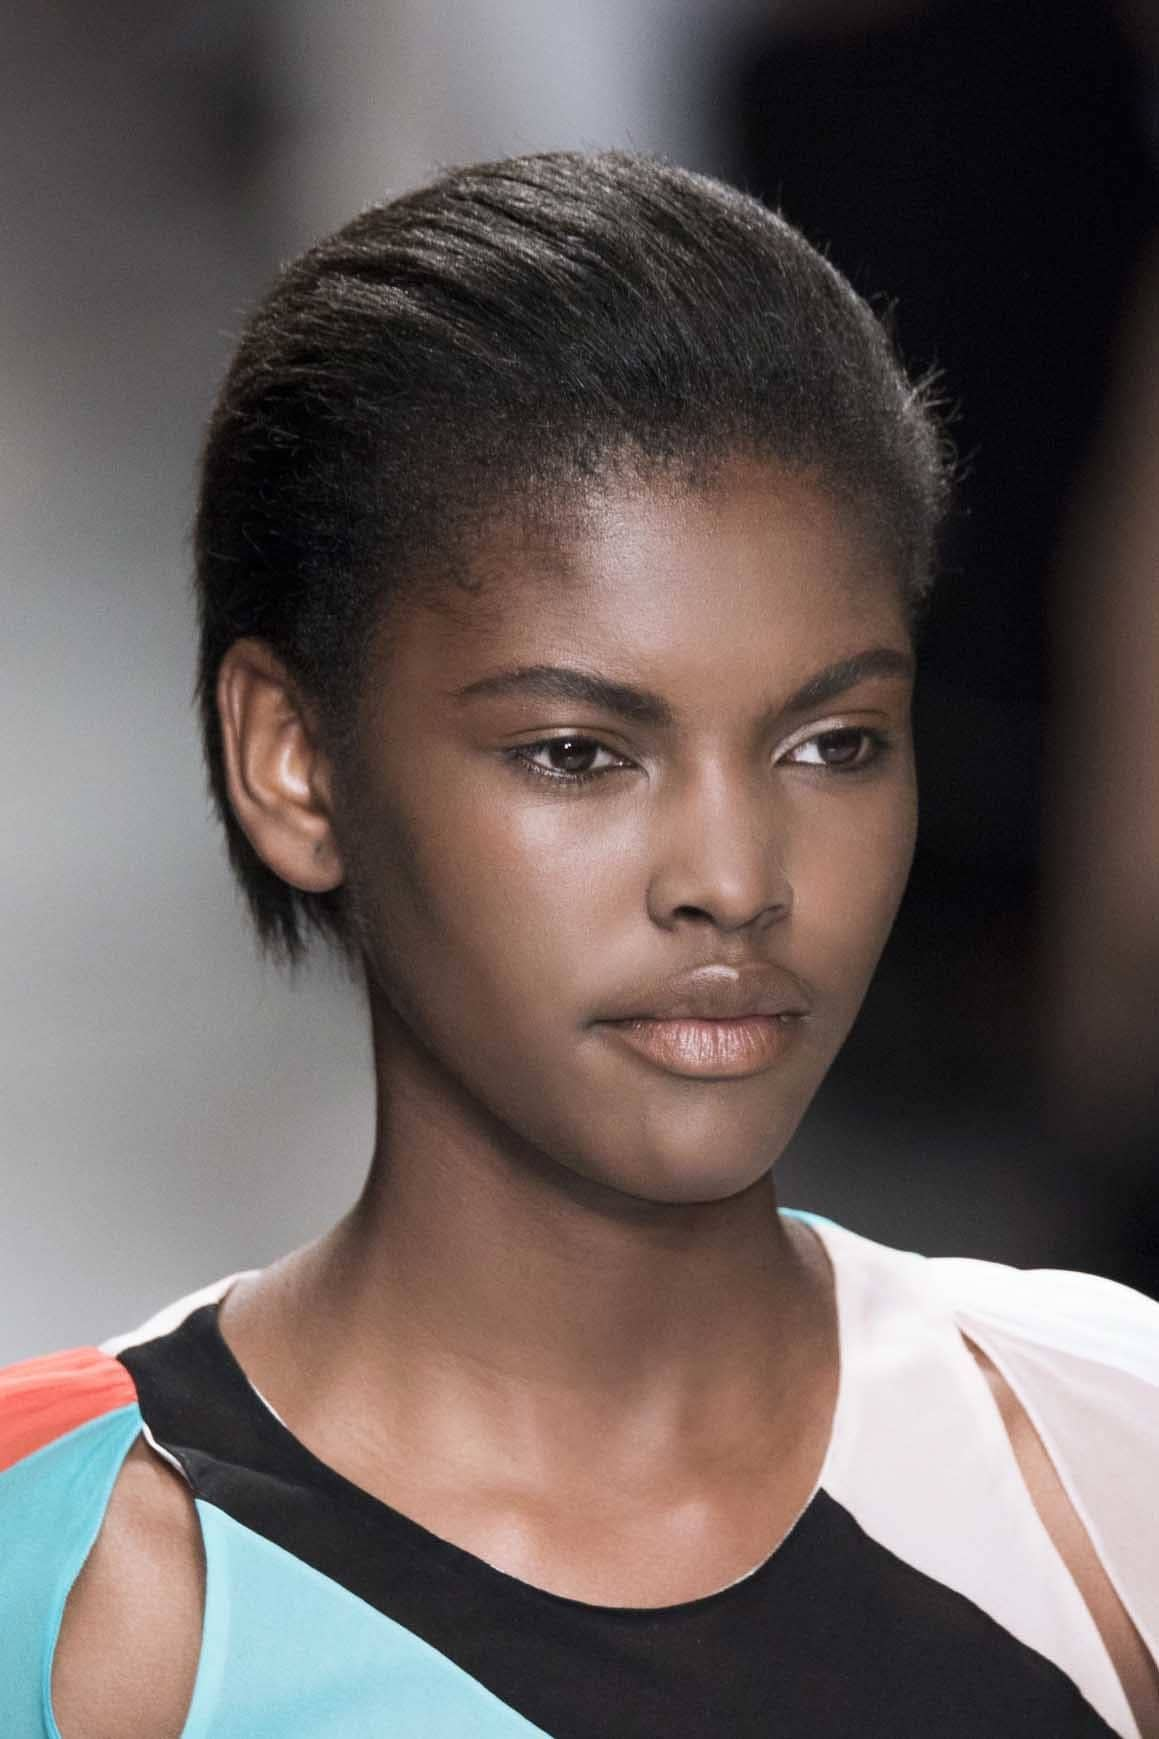 Blck woman with short slicked back hair on runway coconut oil for hair